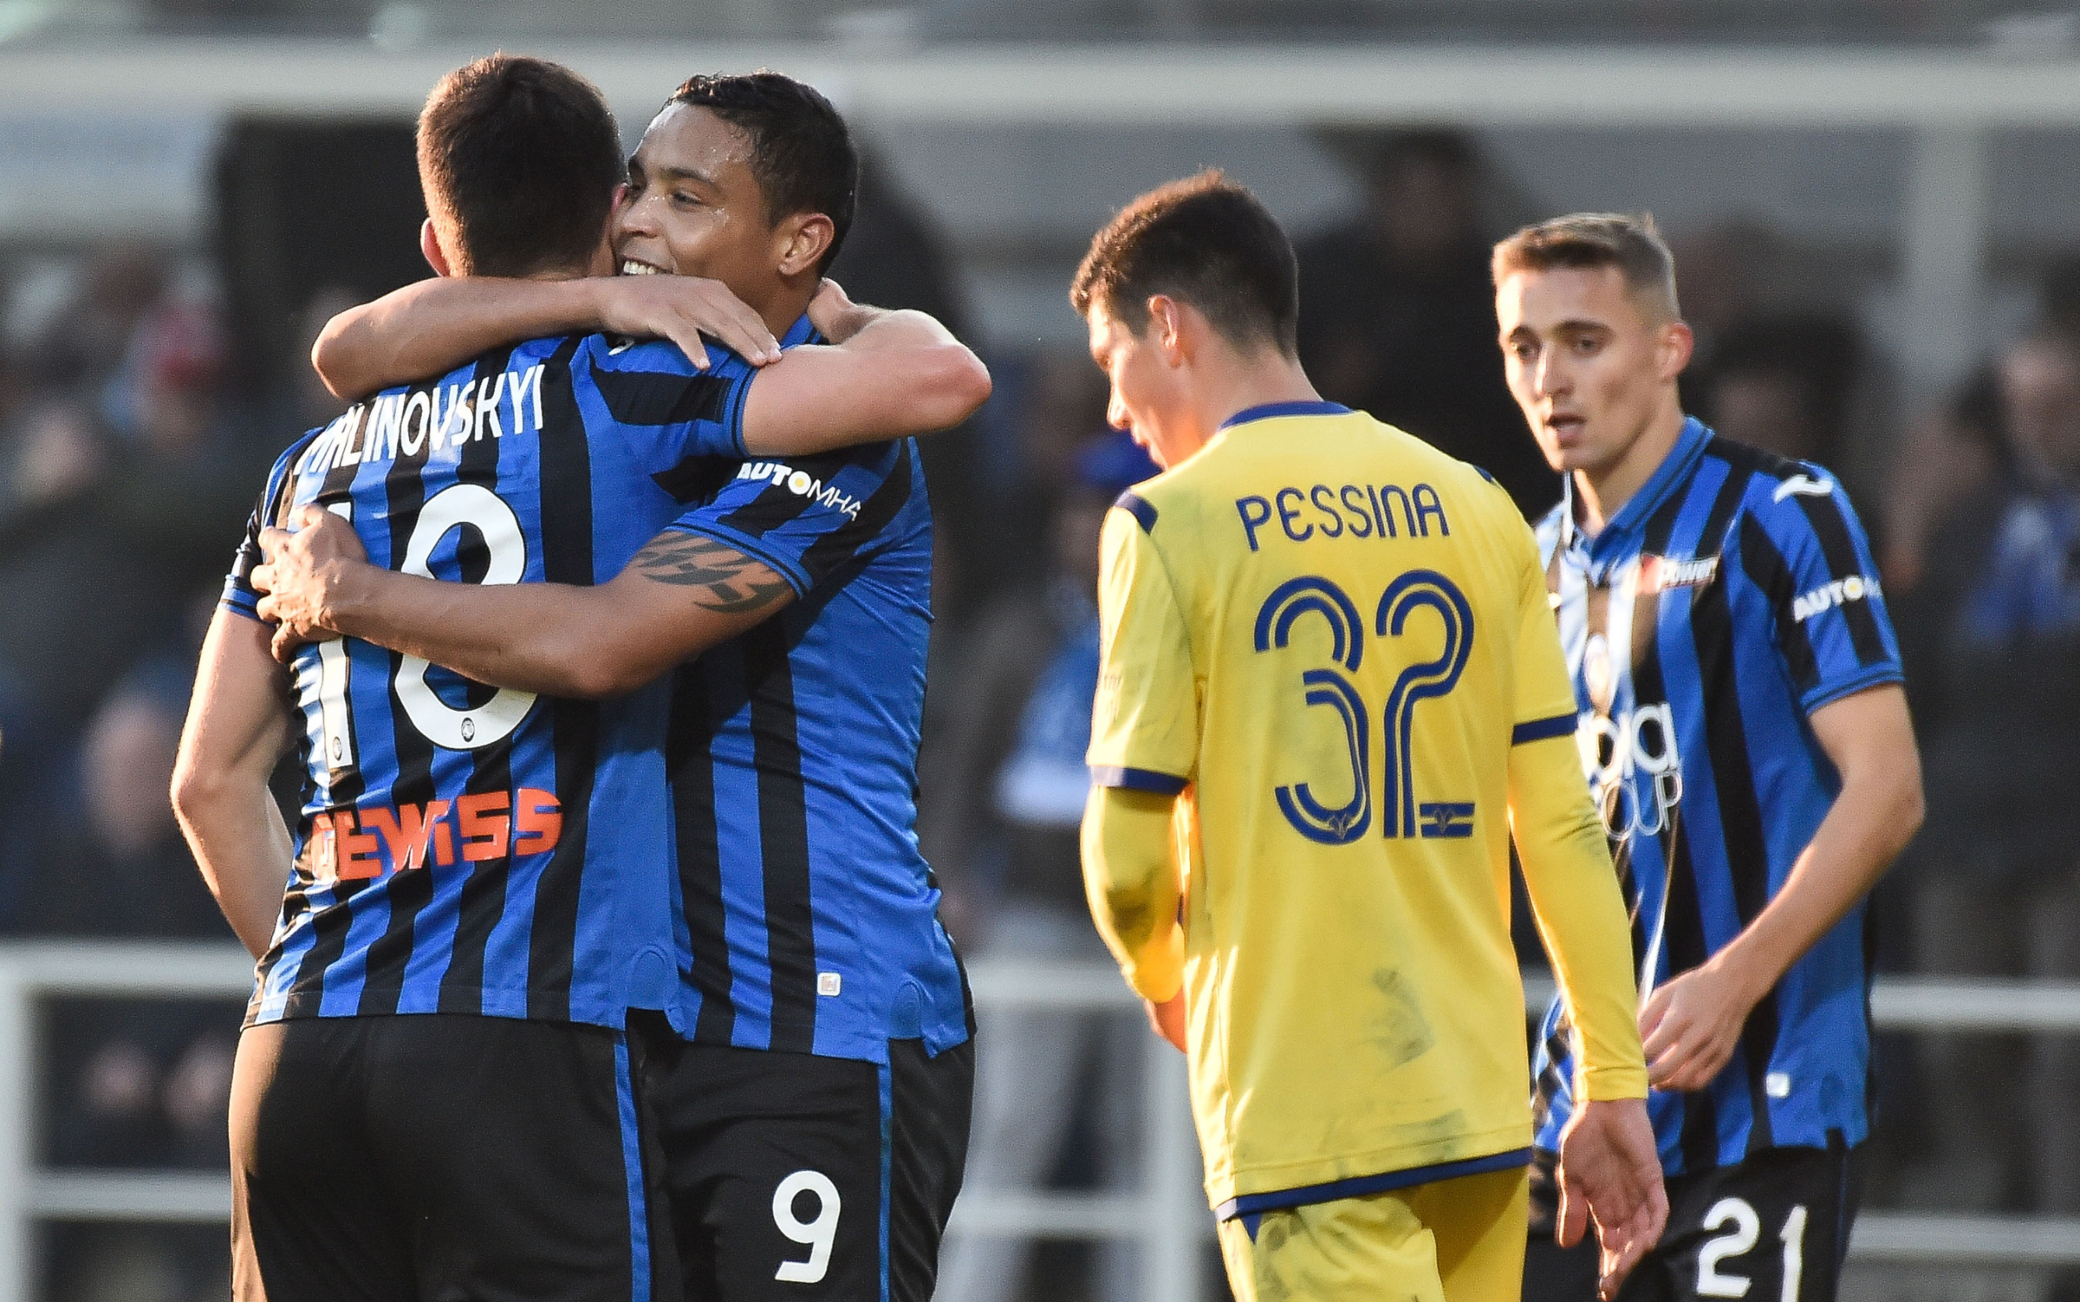 Atalanta-Verona 3-2: gol e highlights. Decide Djimsiti al 93'